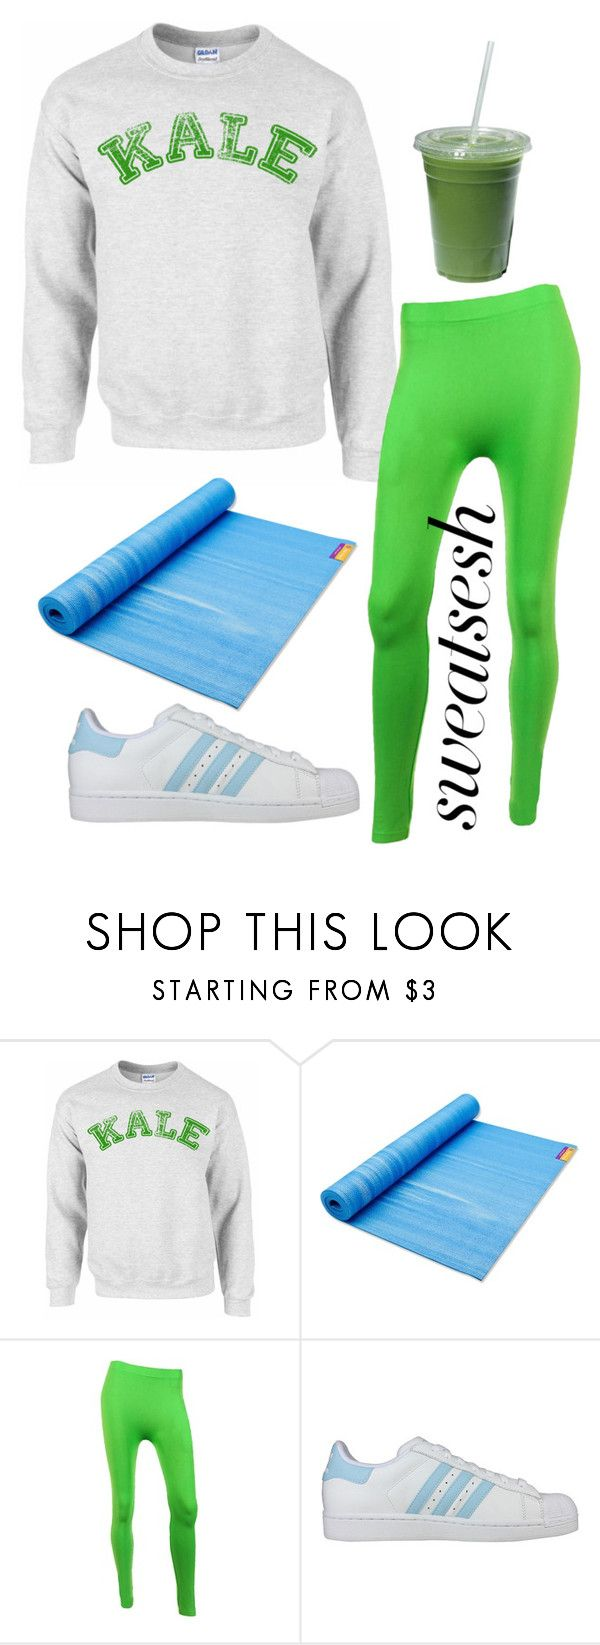 """""""Sweat Sesh: Gym Style"""" by ohlizzy ❤ liked on Polyvore featuring Hugger Mugger, Sofra, adidas and sweatsesh"""